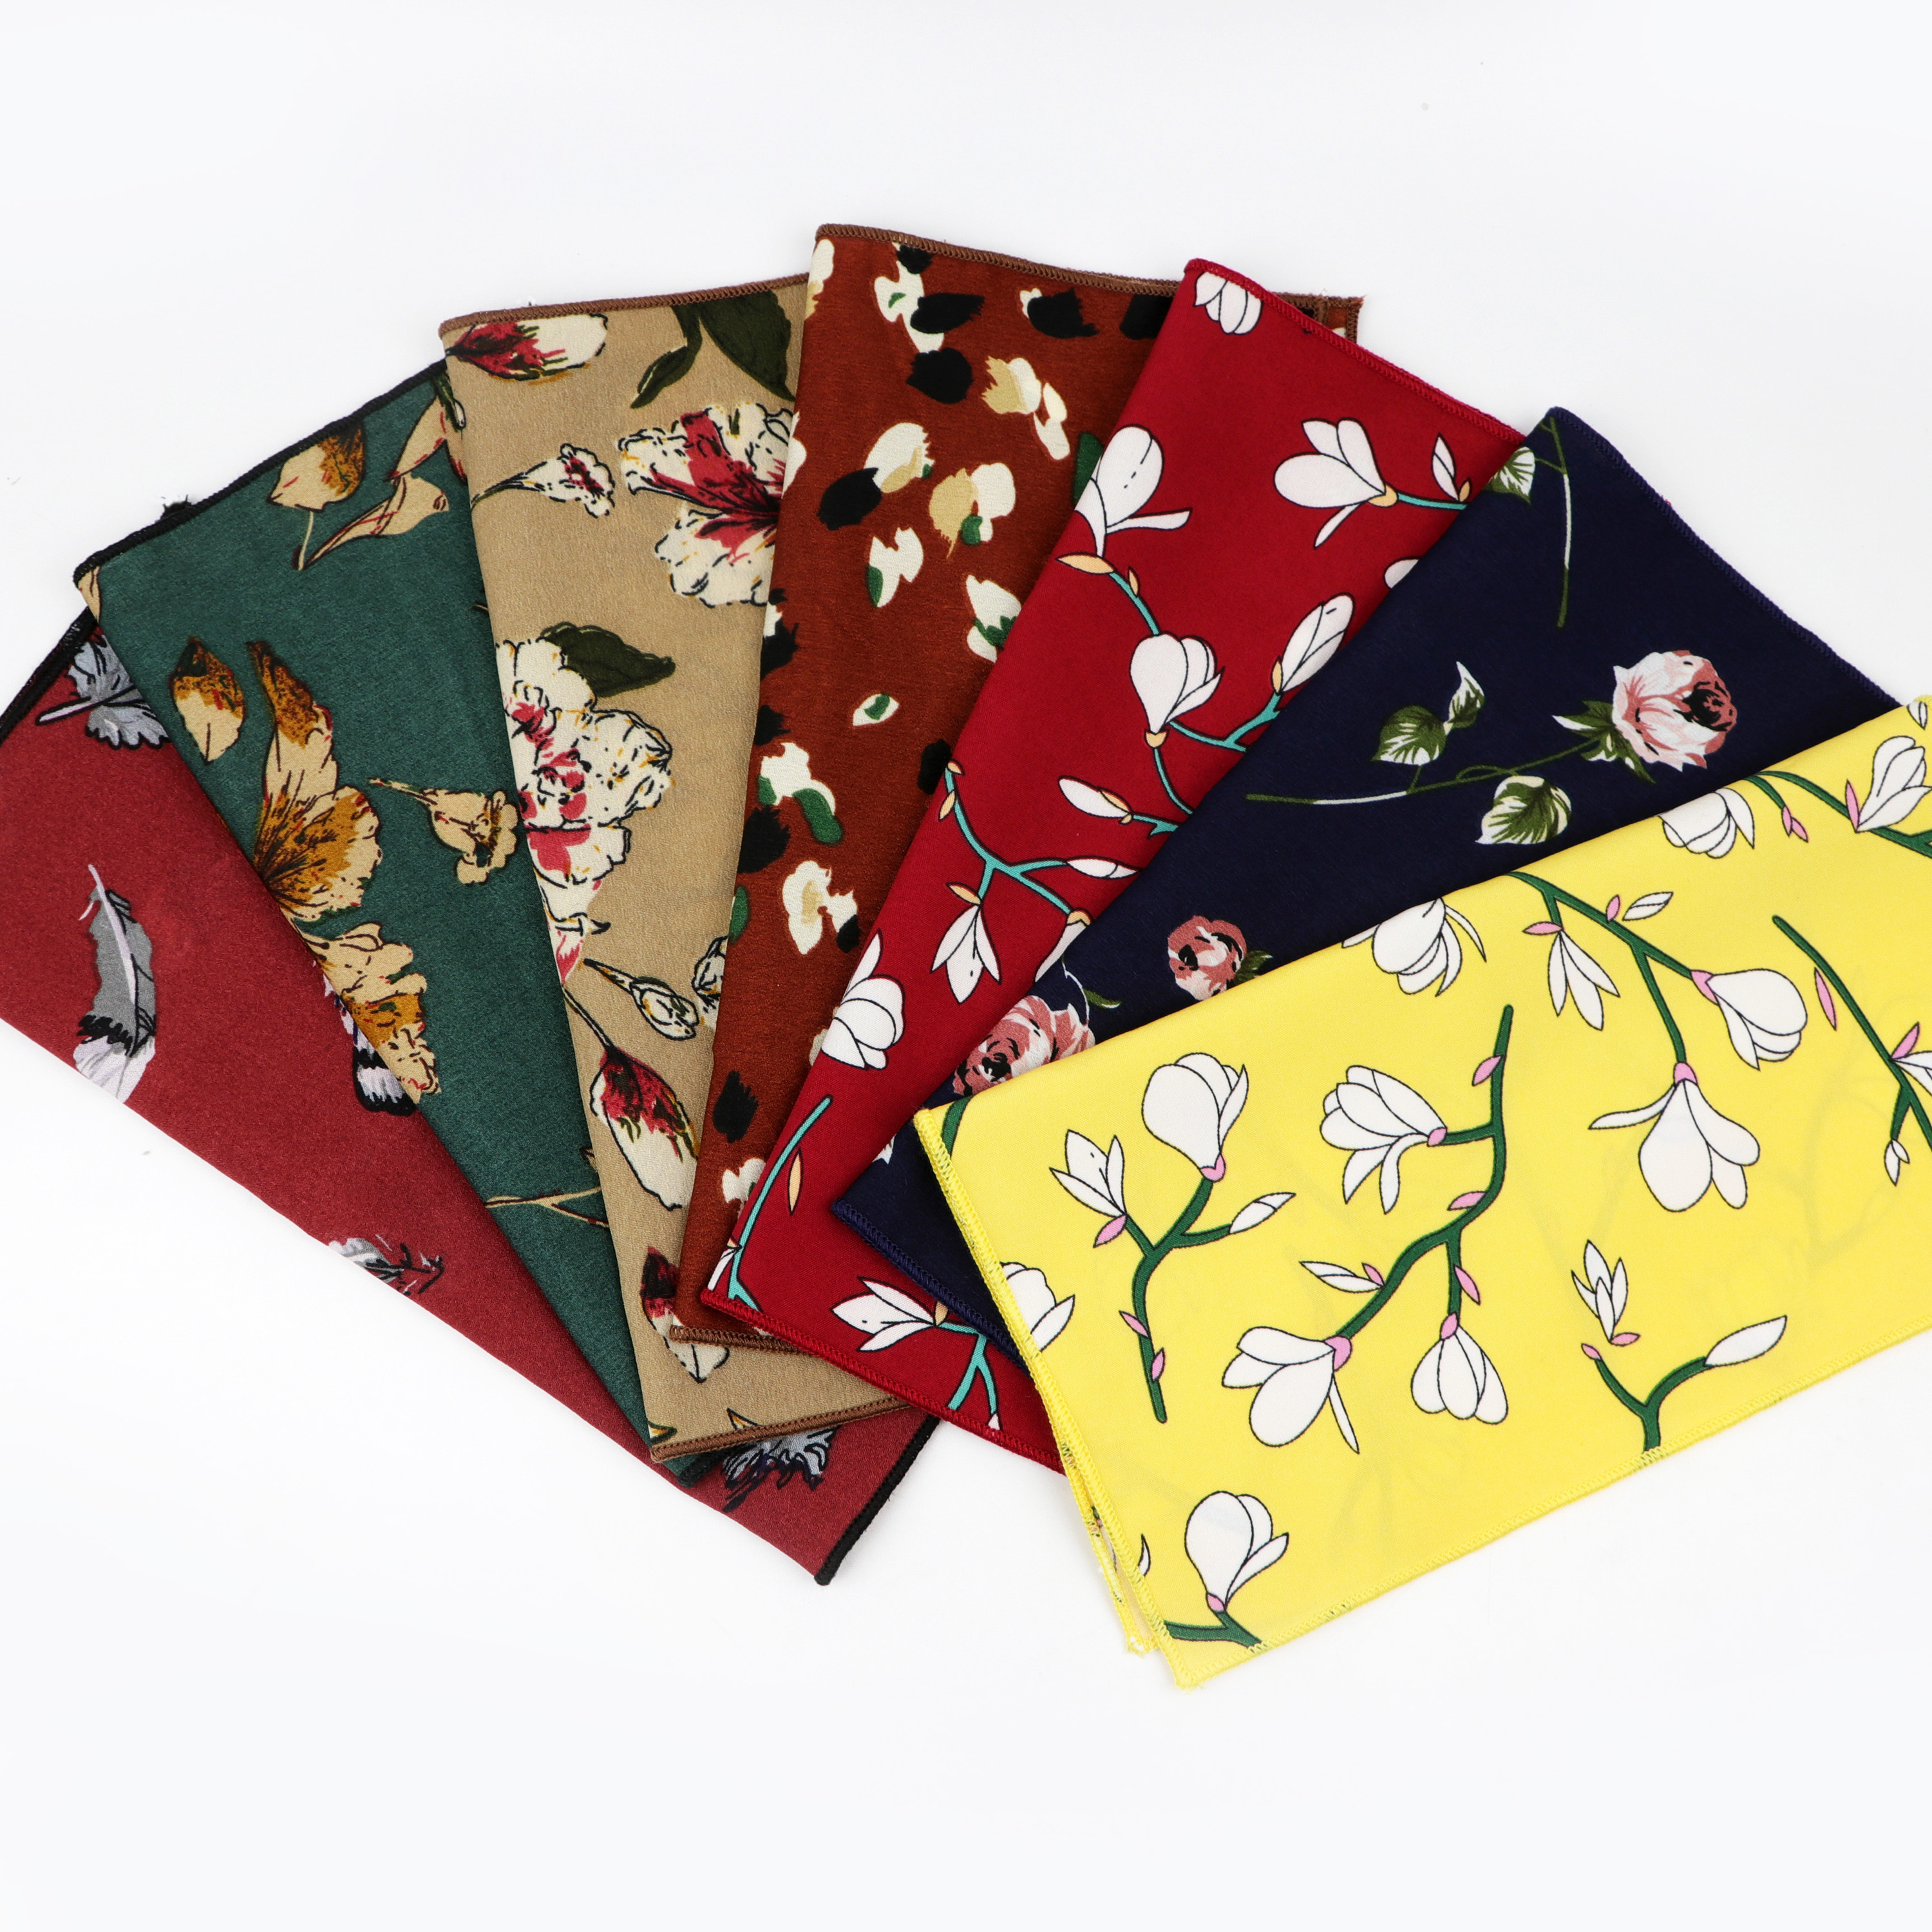 Chiffon Floral Printed Soft Handkerchief Polyester Men Hankies Wedding Banquet Party Pocket Square Flower Accessory Scarves